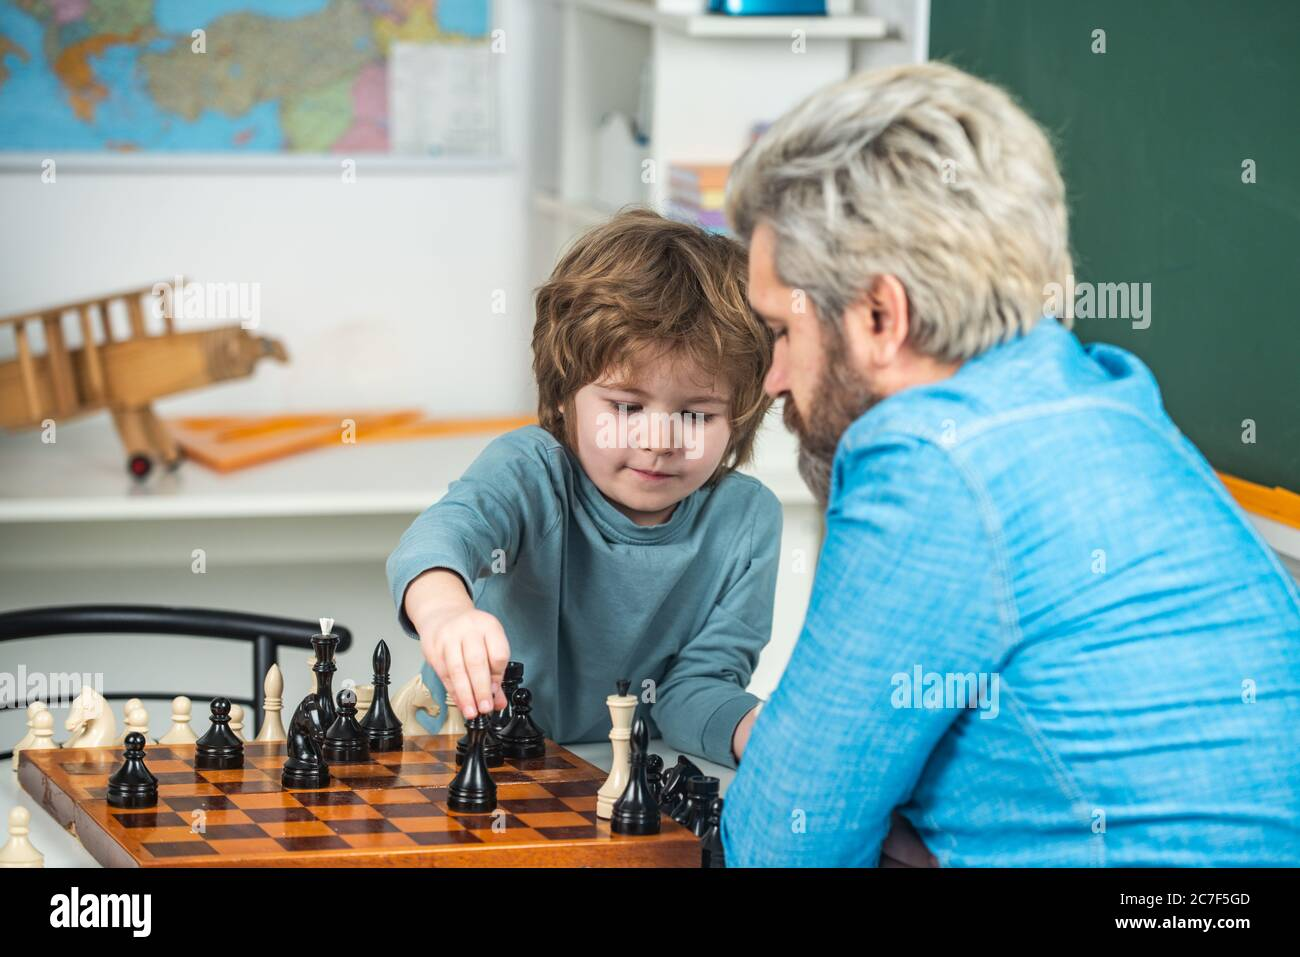 Generations men. Cute little boy playing chess with Parents. Nice concentrated little boy sitting at the table and playing chess with his father Stock Photo